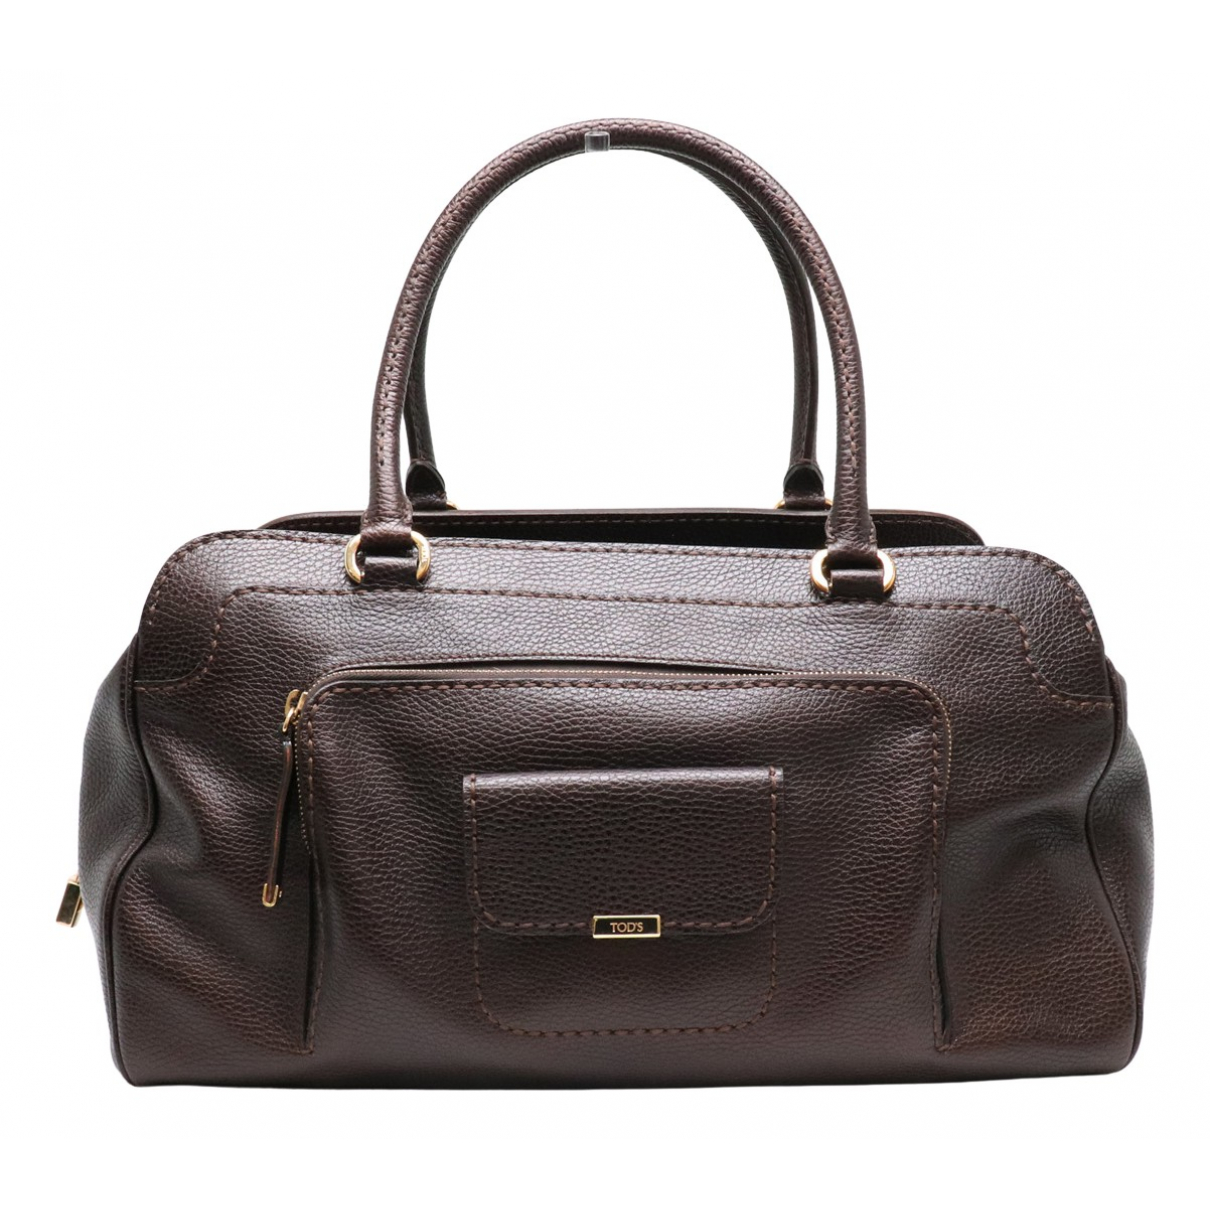 Tod's N Brown Leather Travel bag for Women N